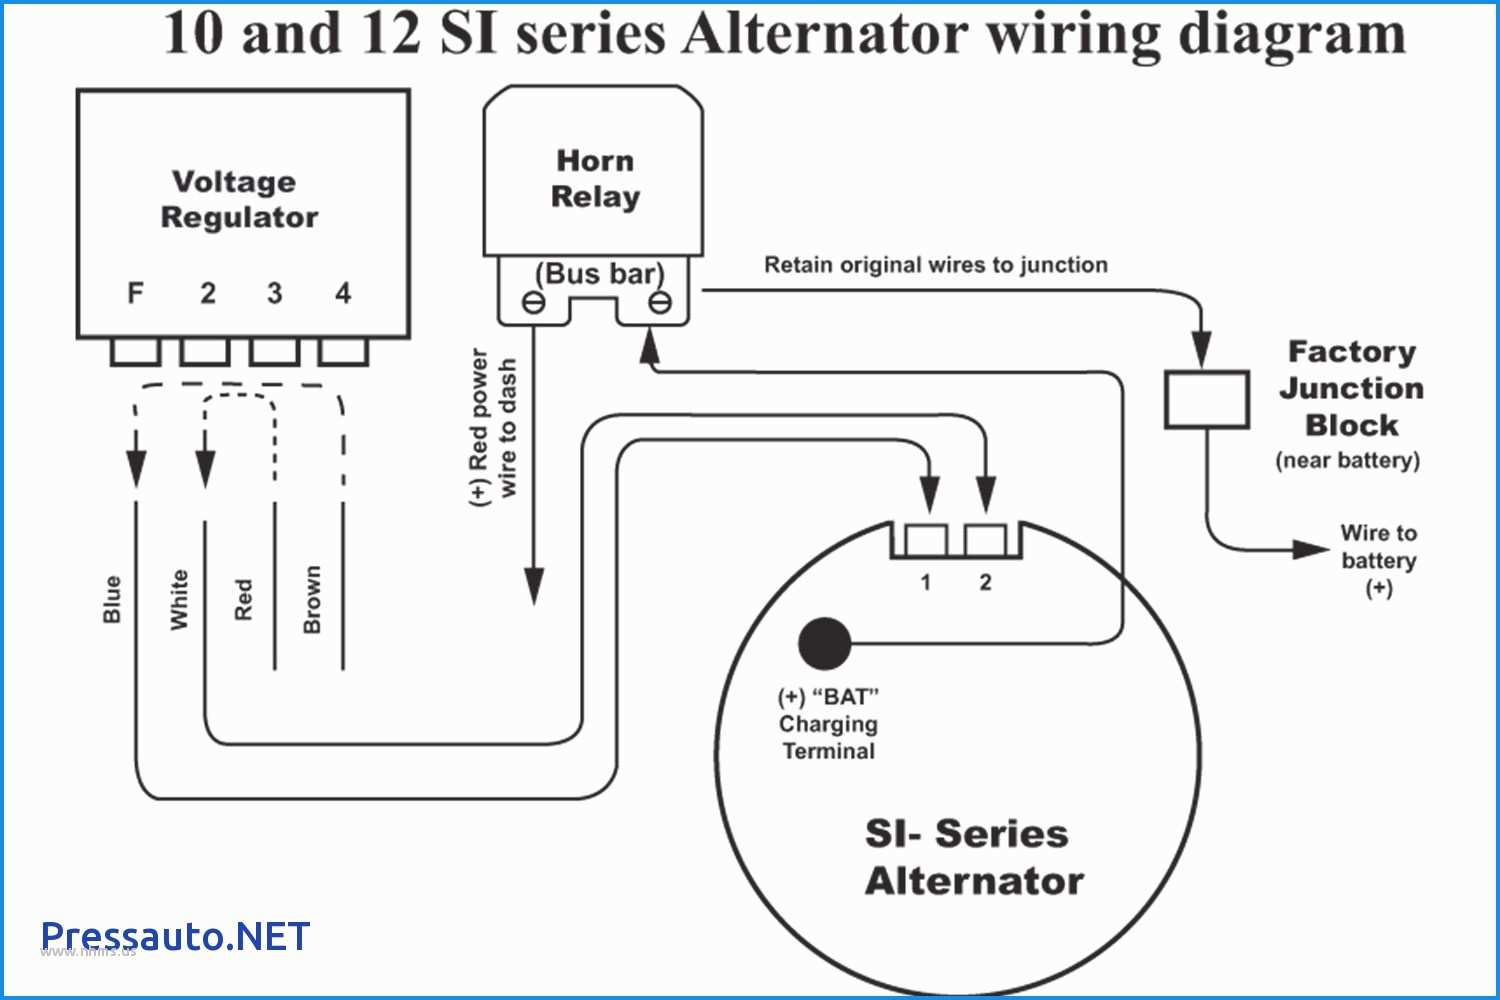 Gm Single Wire Alternator Diagram - Wiring Diagrams Hubs - One Wire Alternator Wiring Diagram Chevy